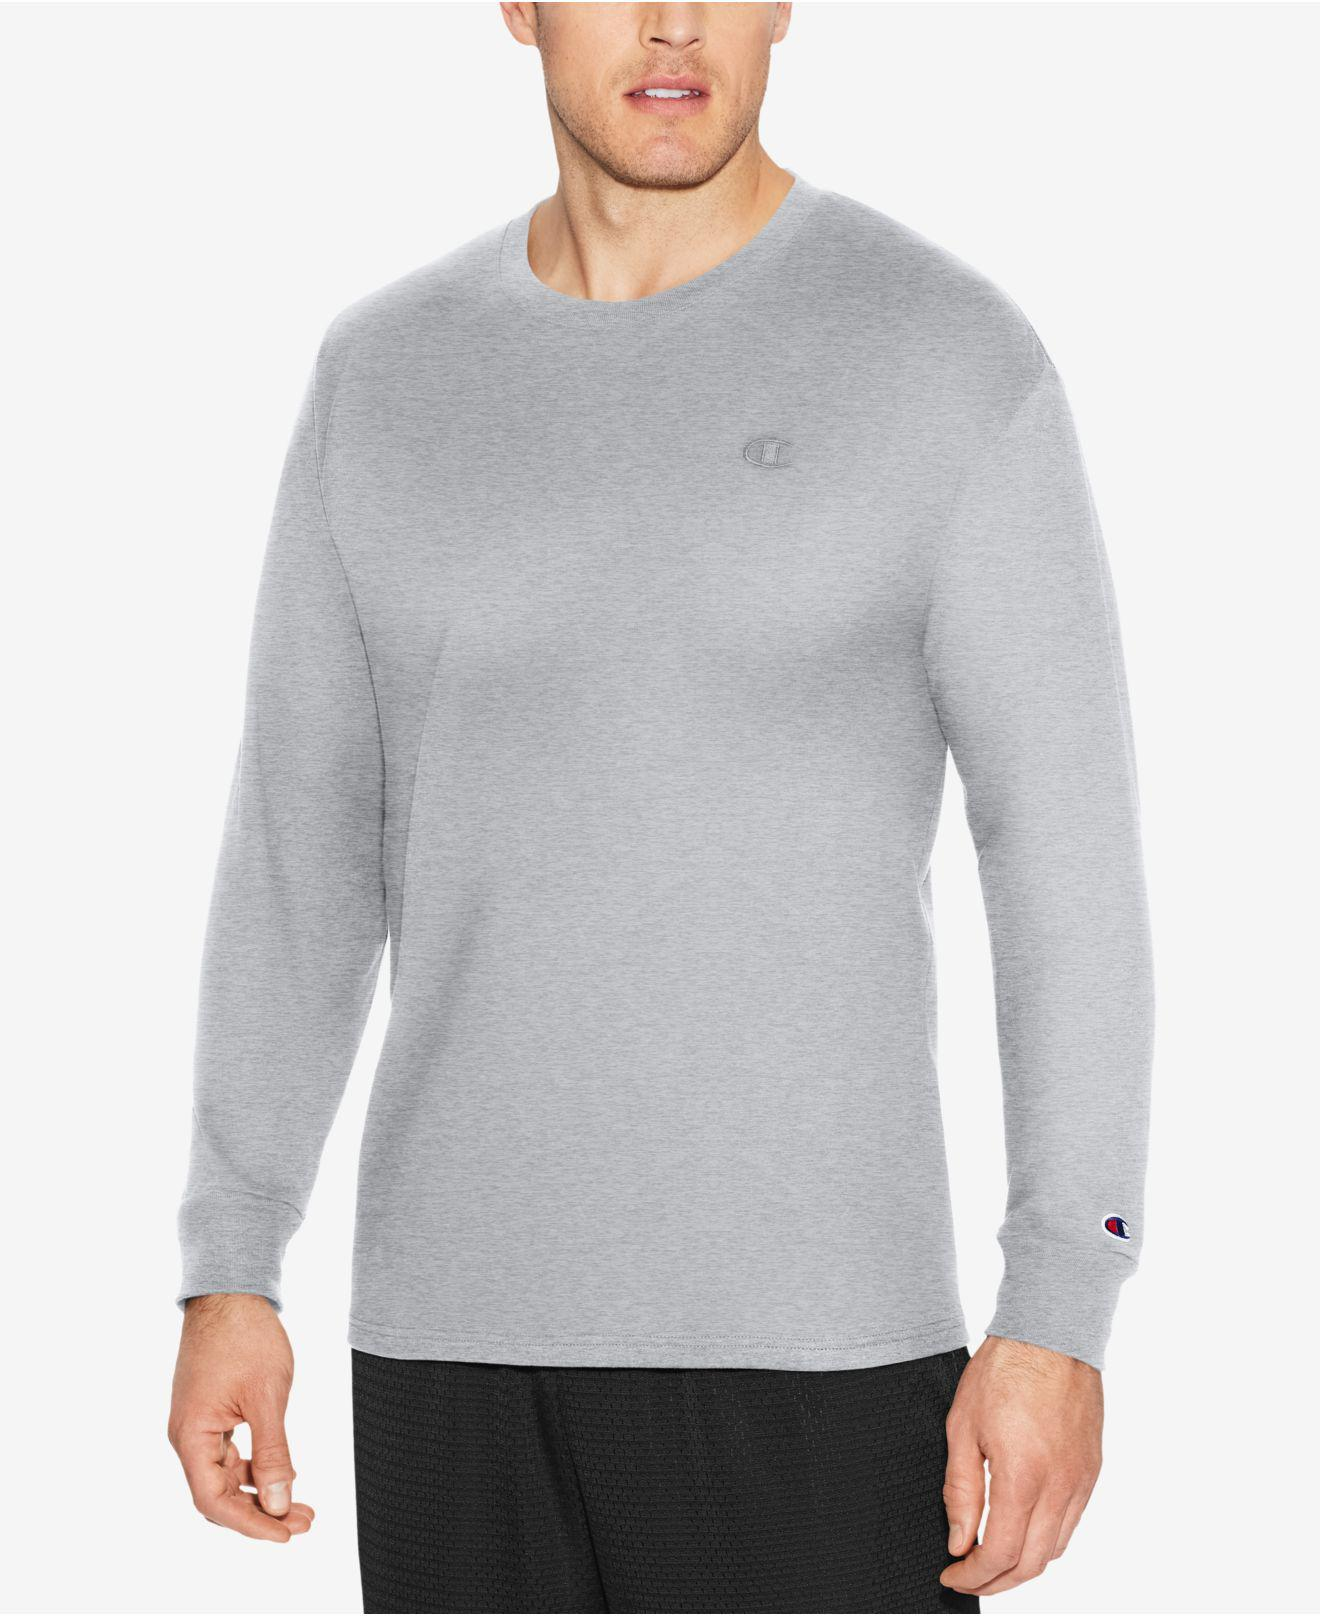 9da5ebe9fabc Lyst - Champion Men s Classic Sweatshirt in Gray for Men